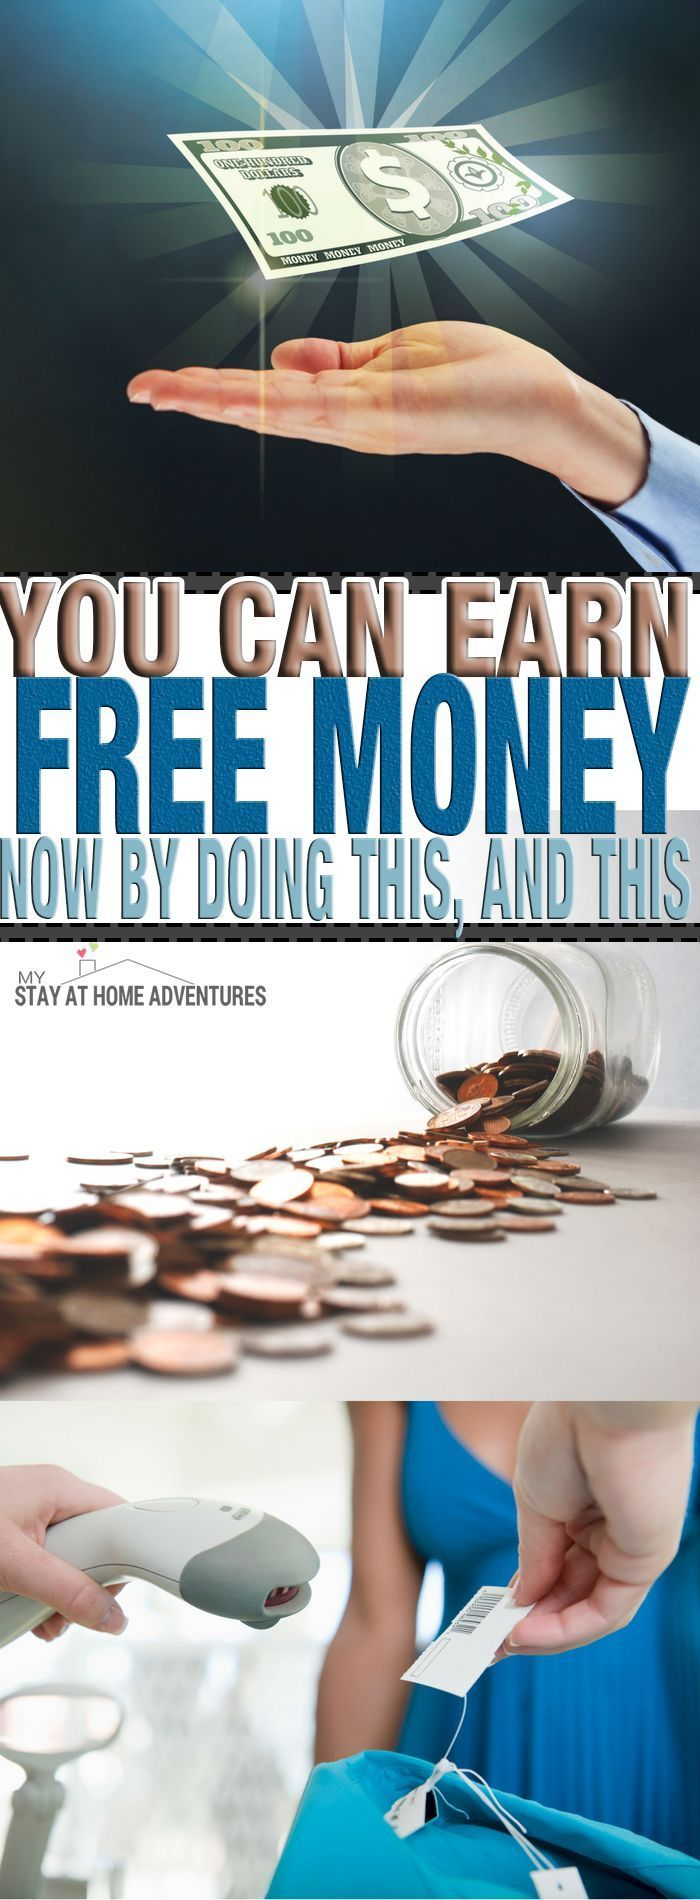 Who doesn't want free money and starting 2017 you can earn free money now and legit. Learn how I have score hundreds of dollars by doing this!